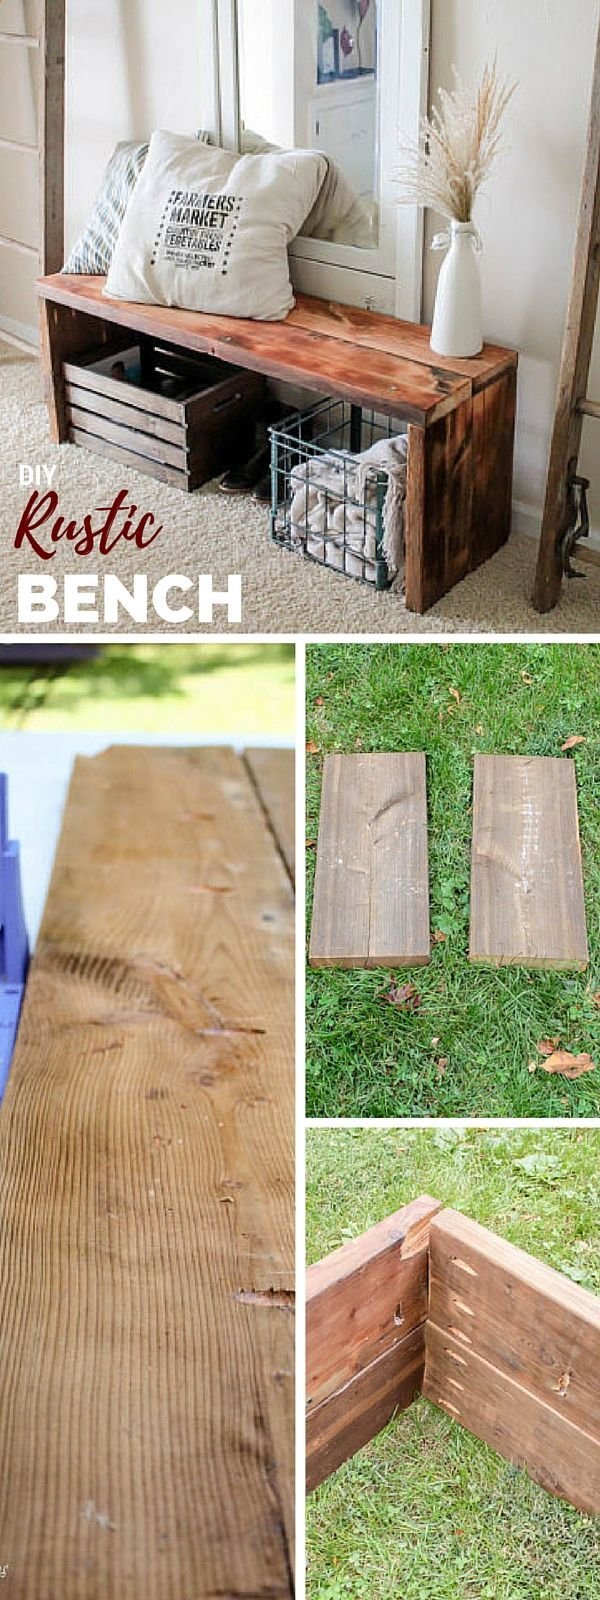 Rustic bench or step stool idea for kids